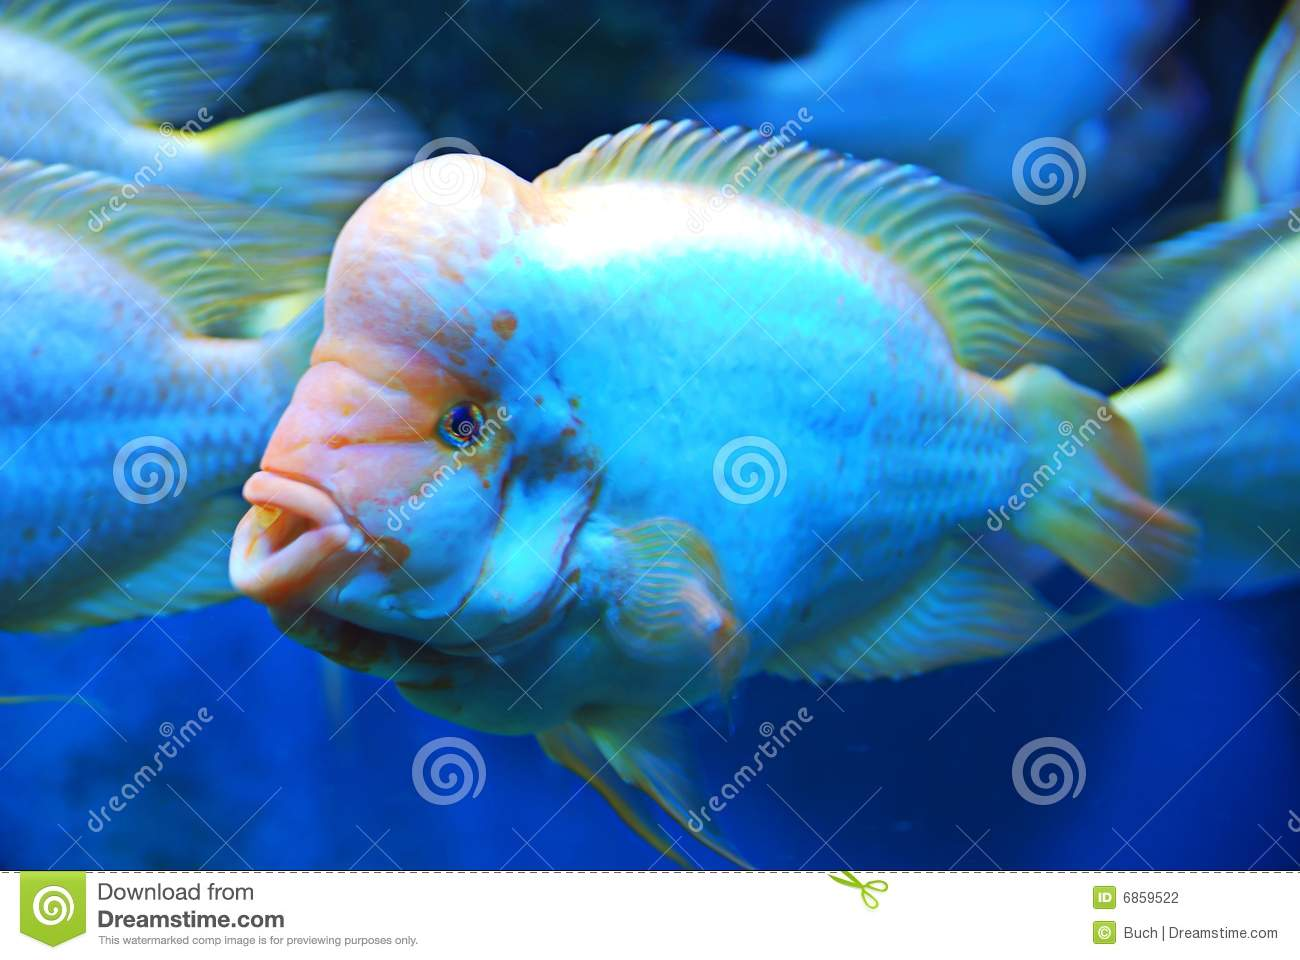 Flowerhorn fish stock photography image 6859522 for Flower horn fish price